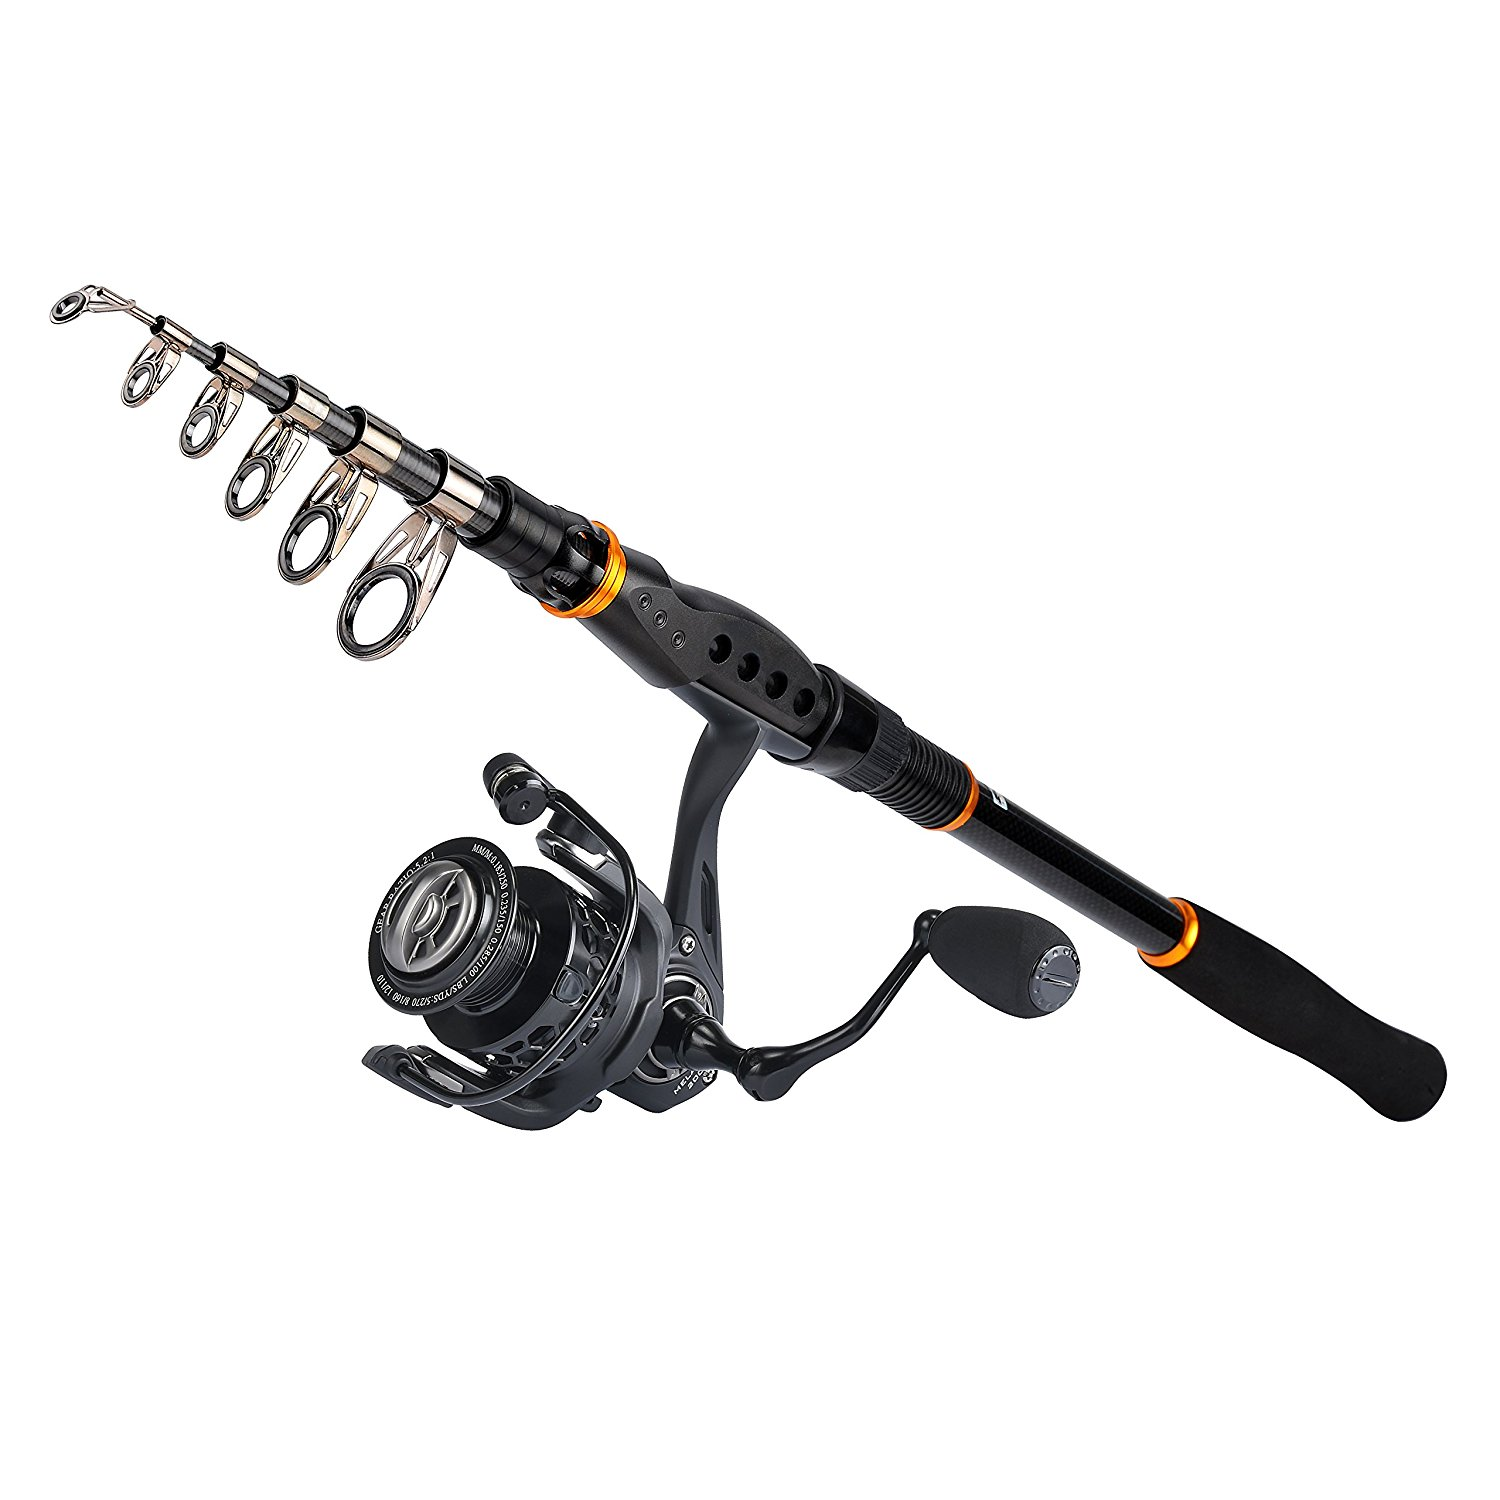 5 best fishing rod and reel combo kits for a beginner for Best fishing combo